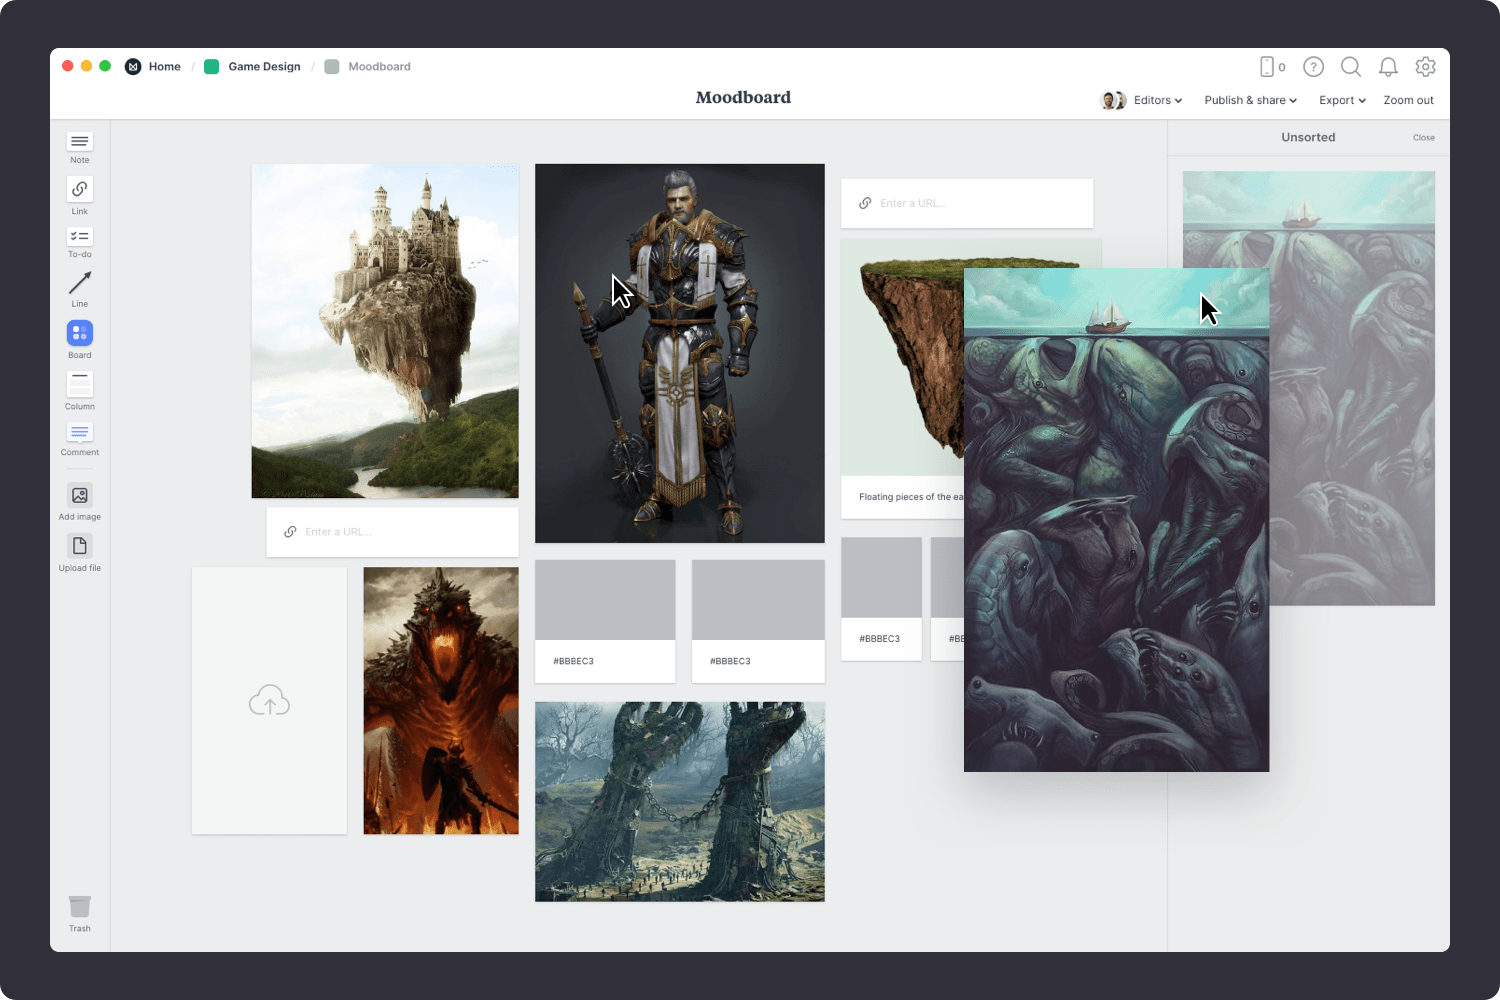 Adding images to a game design moodboard template